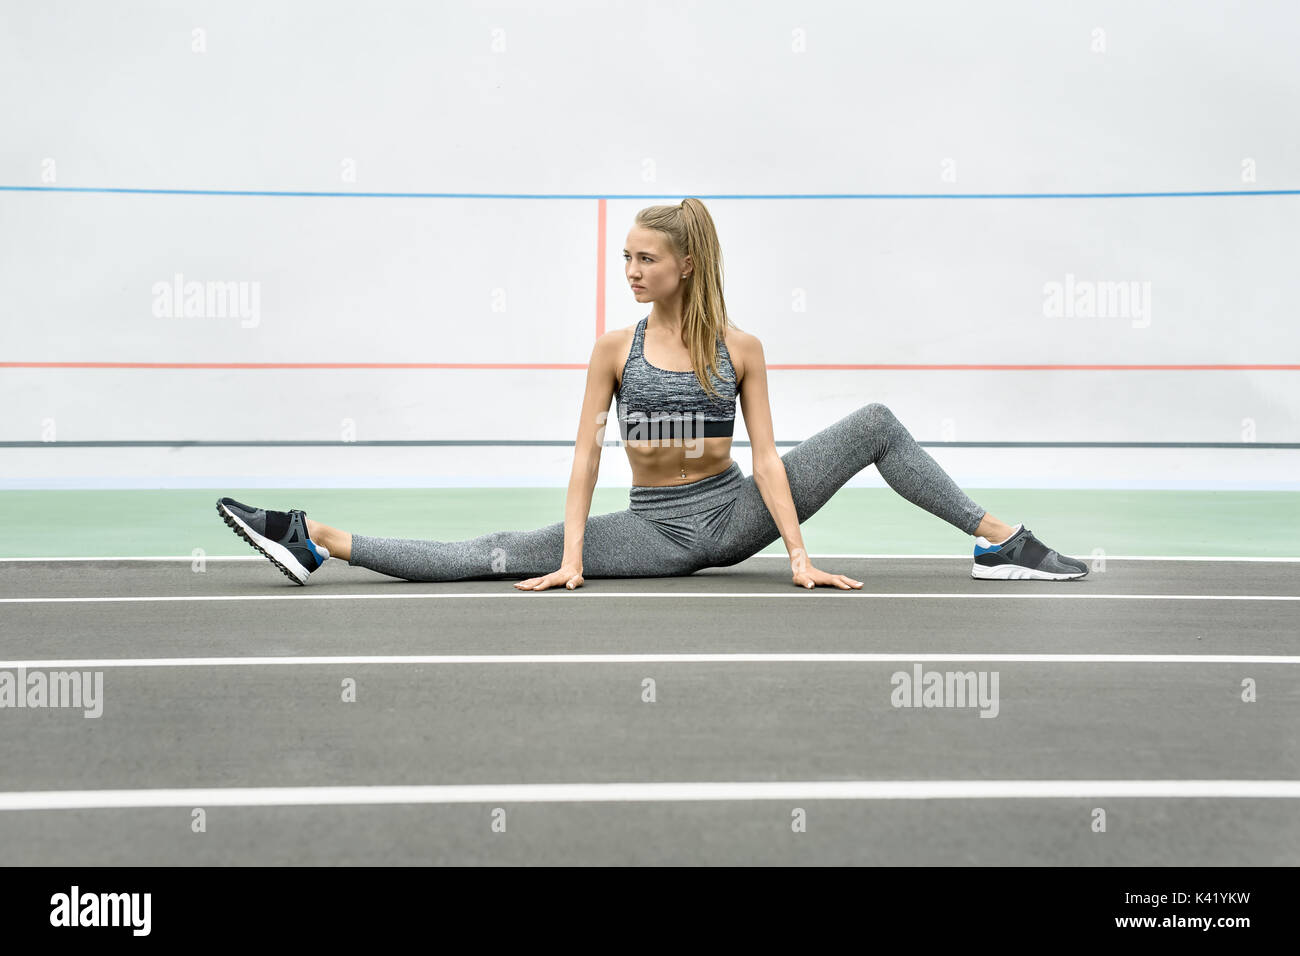 Pretty girl sits on the twine on the cycle track outdoors. She holds her hands on the ground and looks to the side. Her left leg is bent in the knee.  - Stock Image